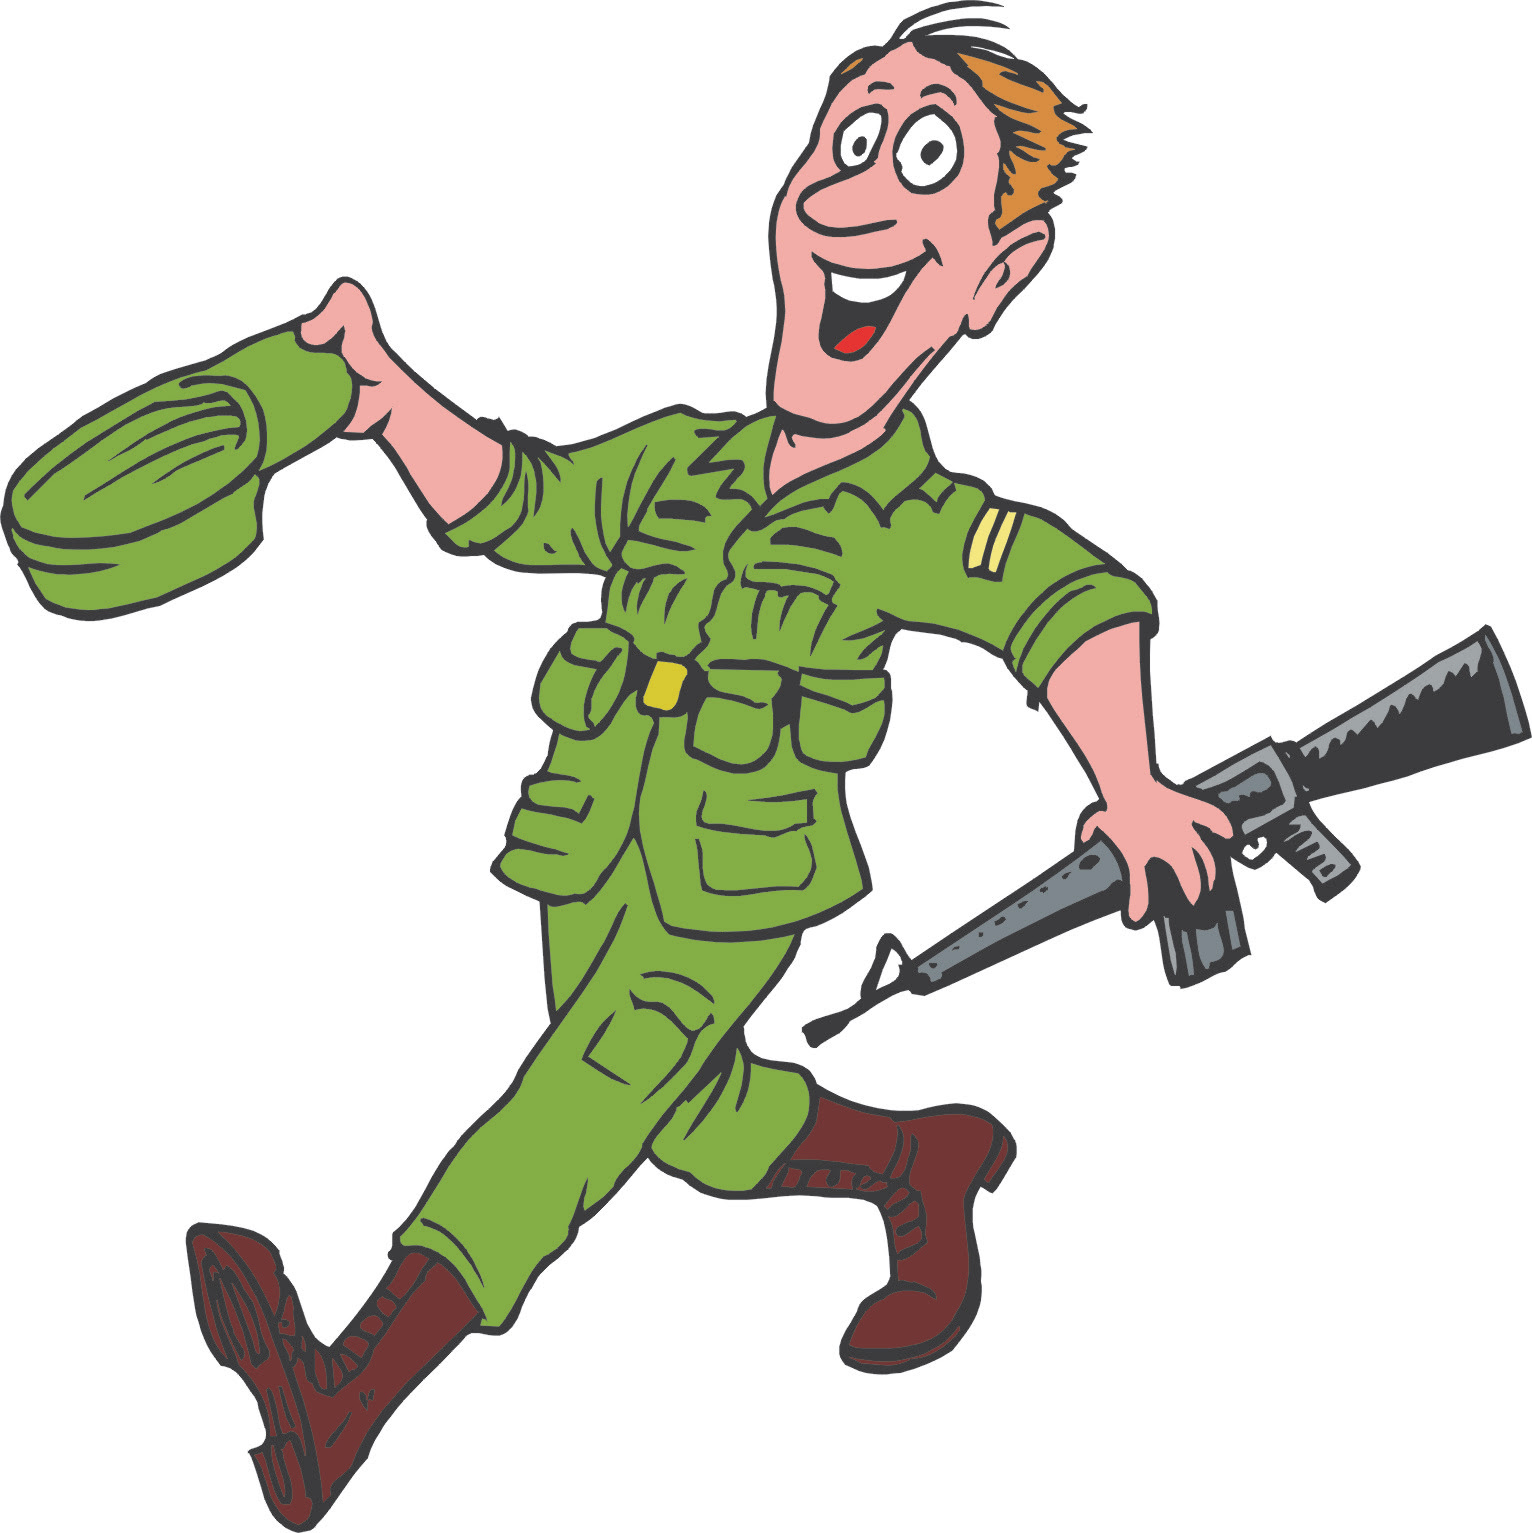 64 Army Cartoon Coloring Pages Images & Pictures In HD